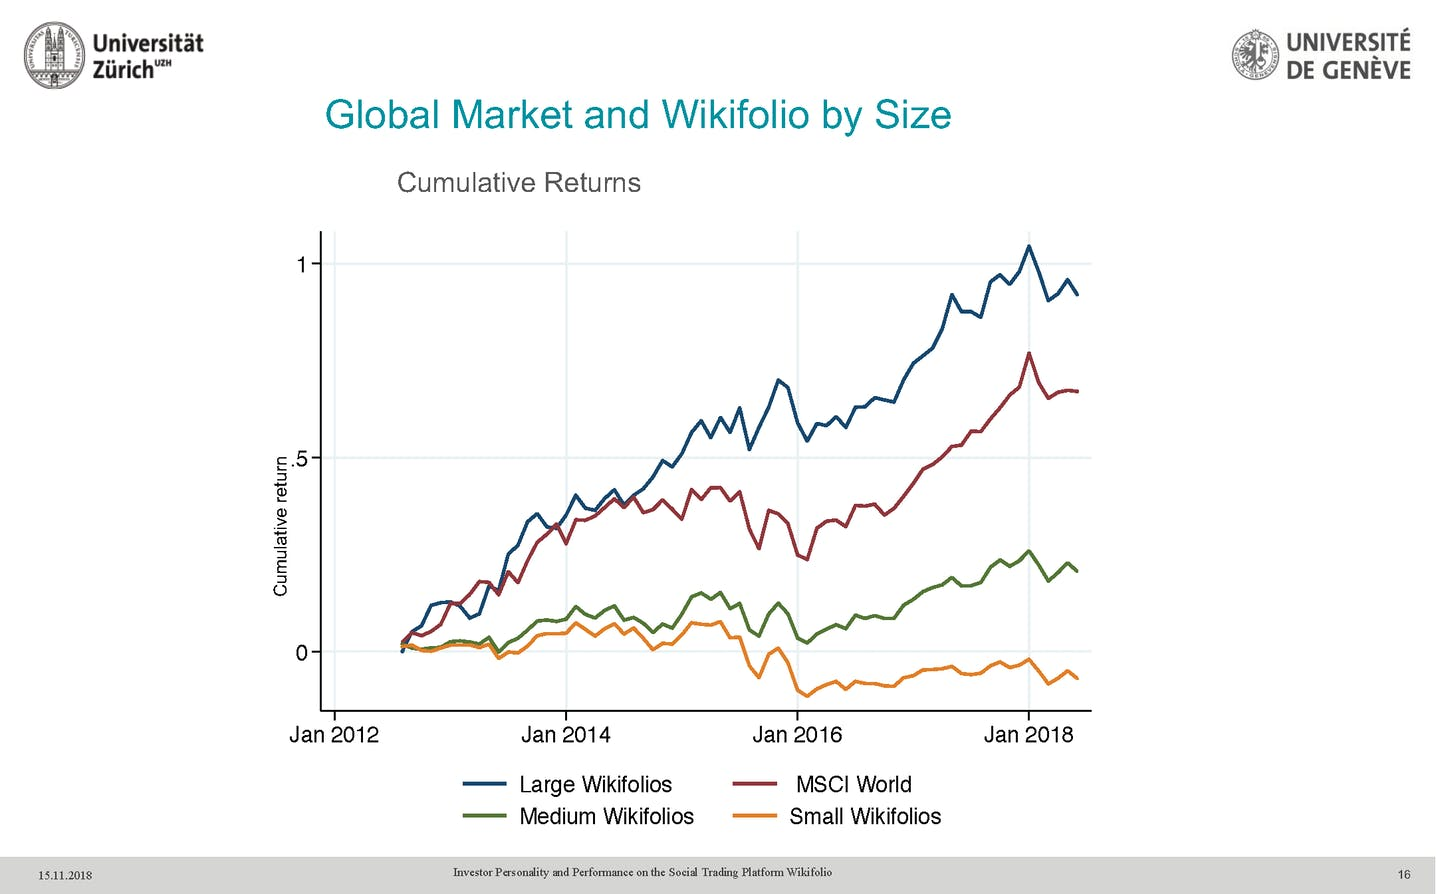 cumulative-returns-wikifolio-certificates-and-MSCI-world-index-comparison